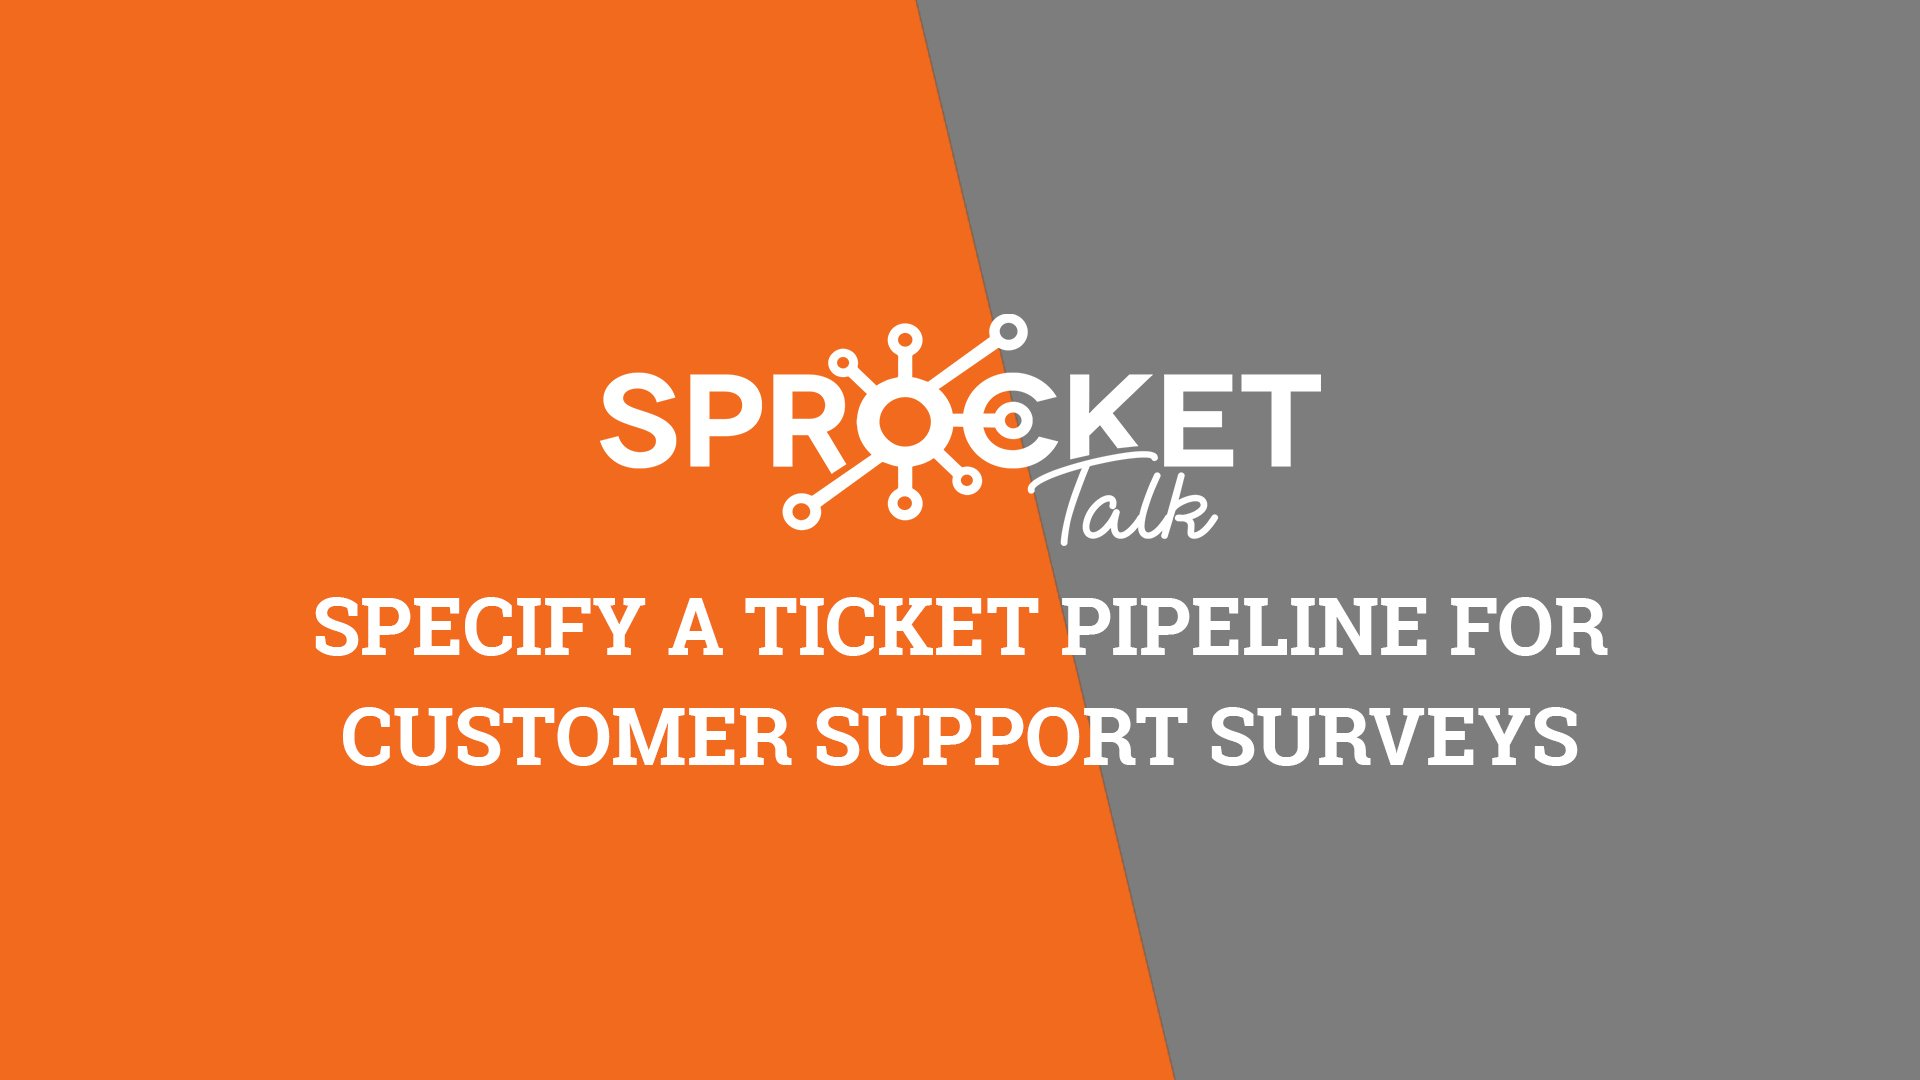 Specify a Ticket Pipeline for Customer Support Surveys